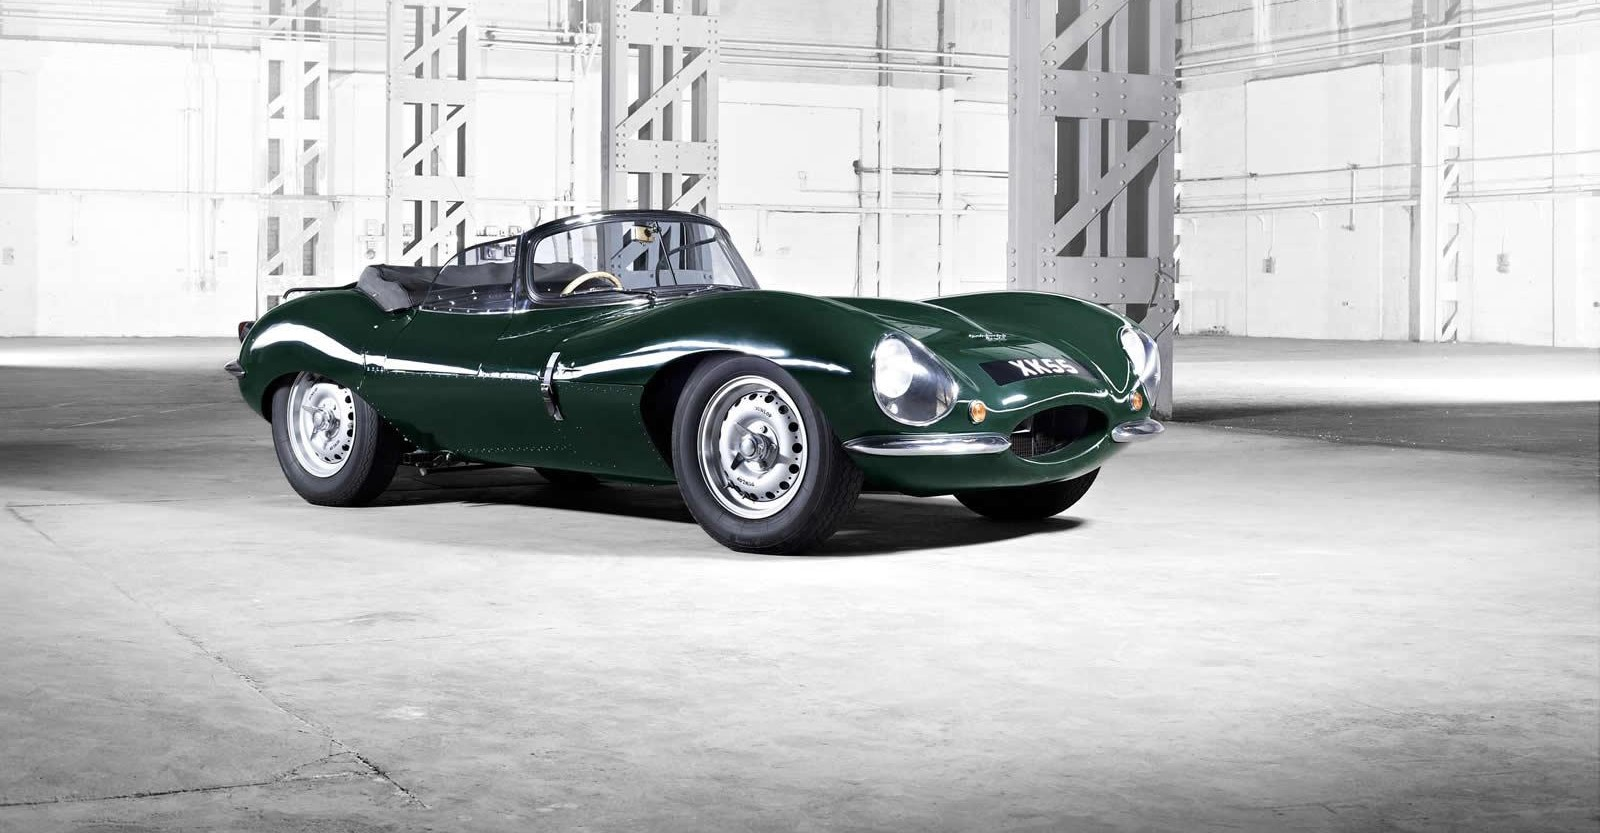 jaguar xkss 9 exemplaires de la mythique voiture de steve mcqueen vont tre reconstruits. Black Bedroom Furniture Sets. Home Design Ideas